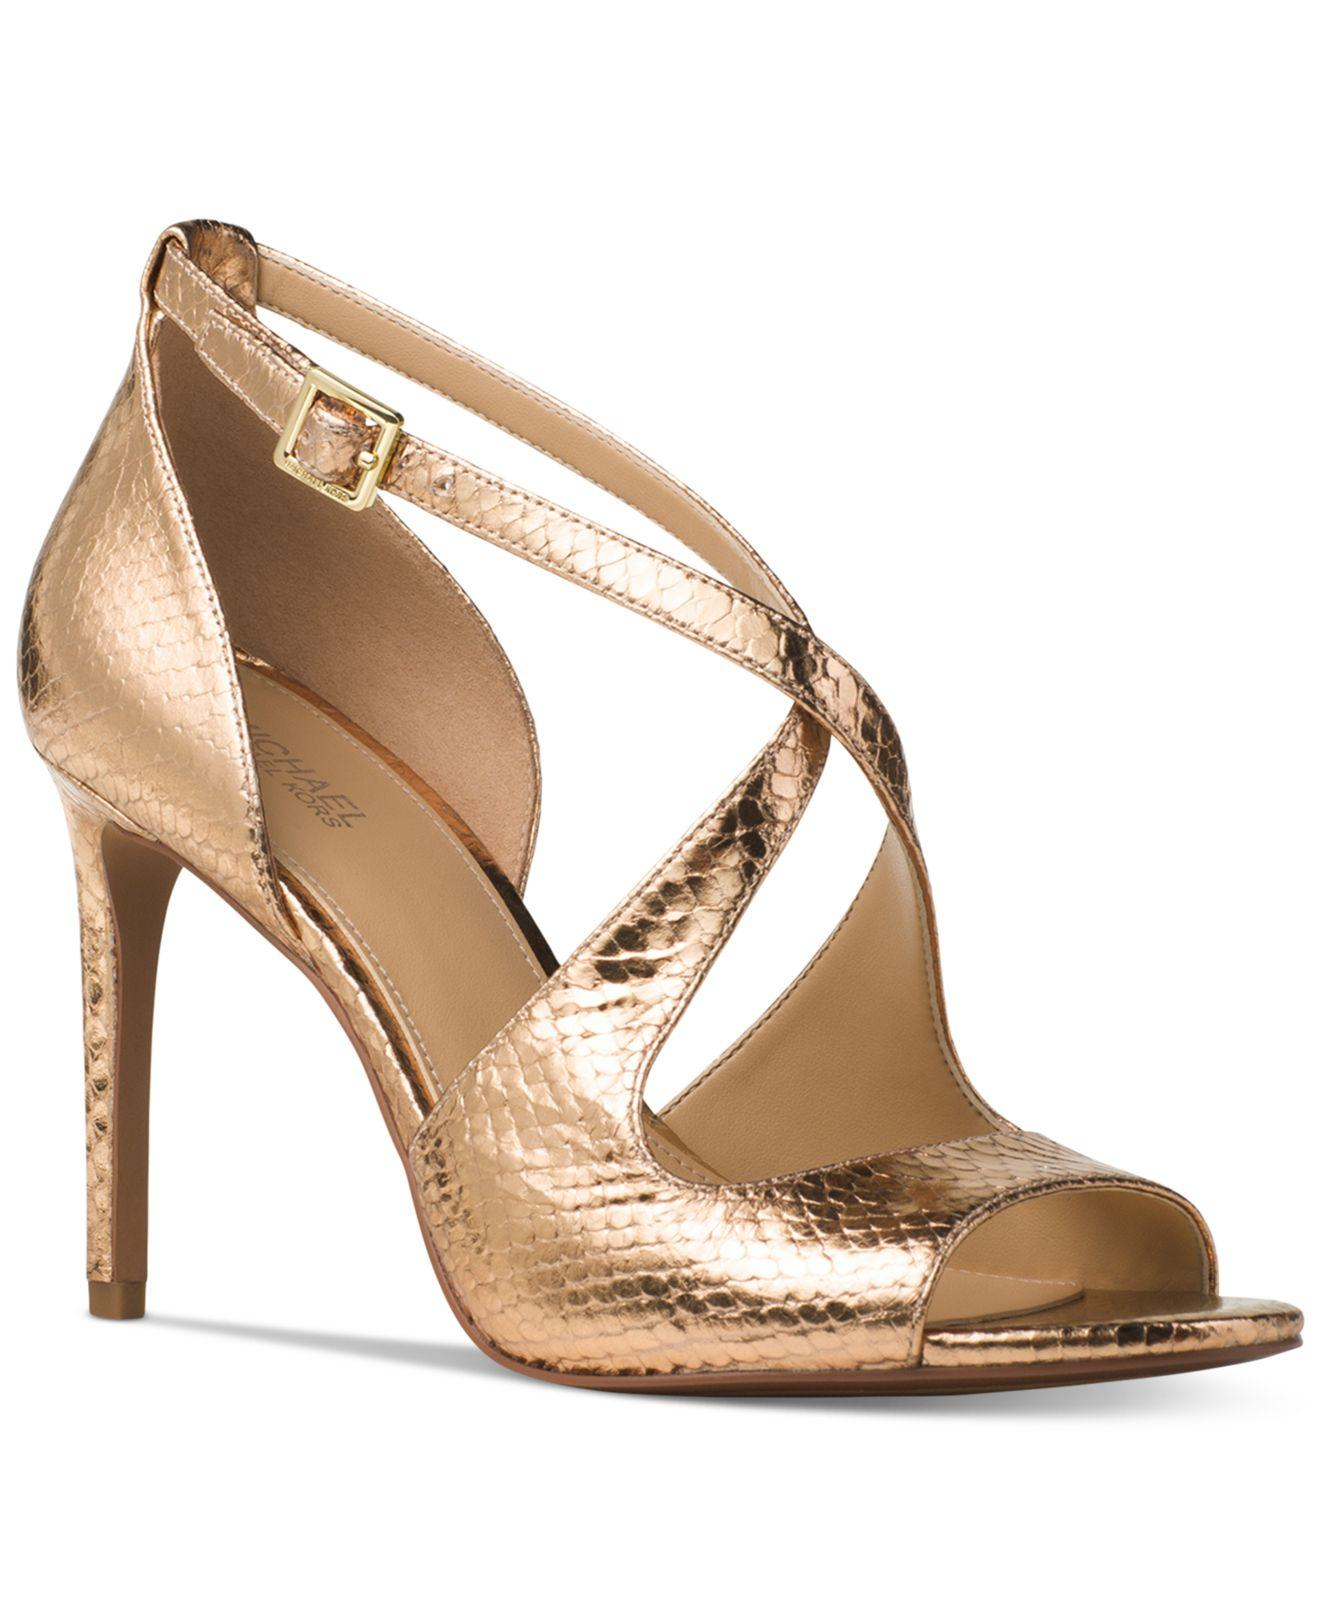 Lyst - Michael Kors Estee Sandals in Metallic